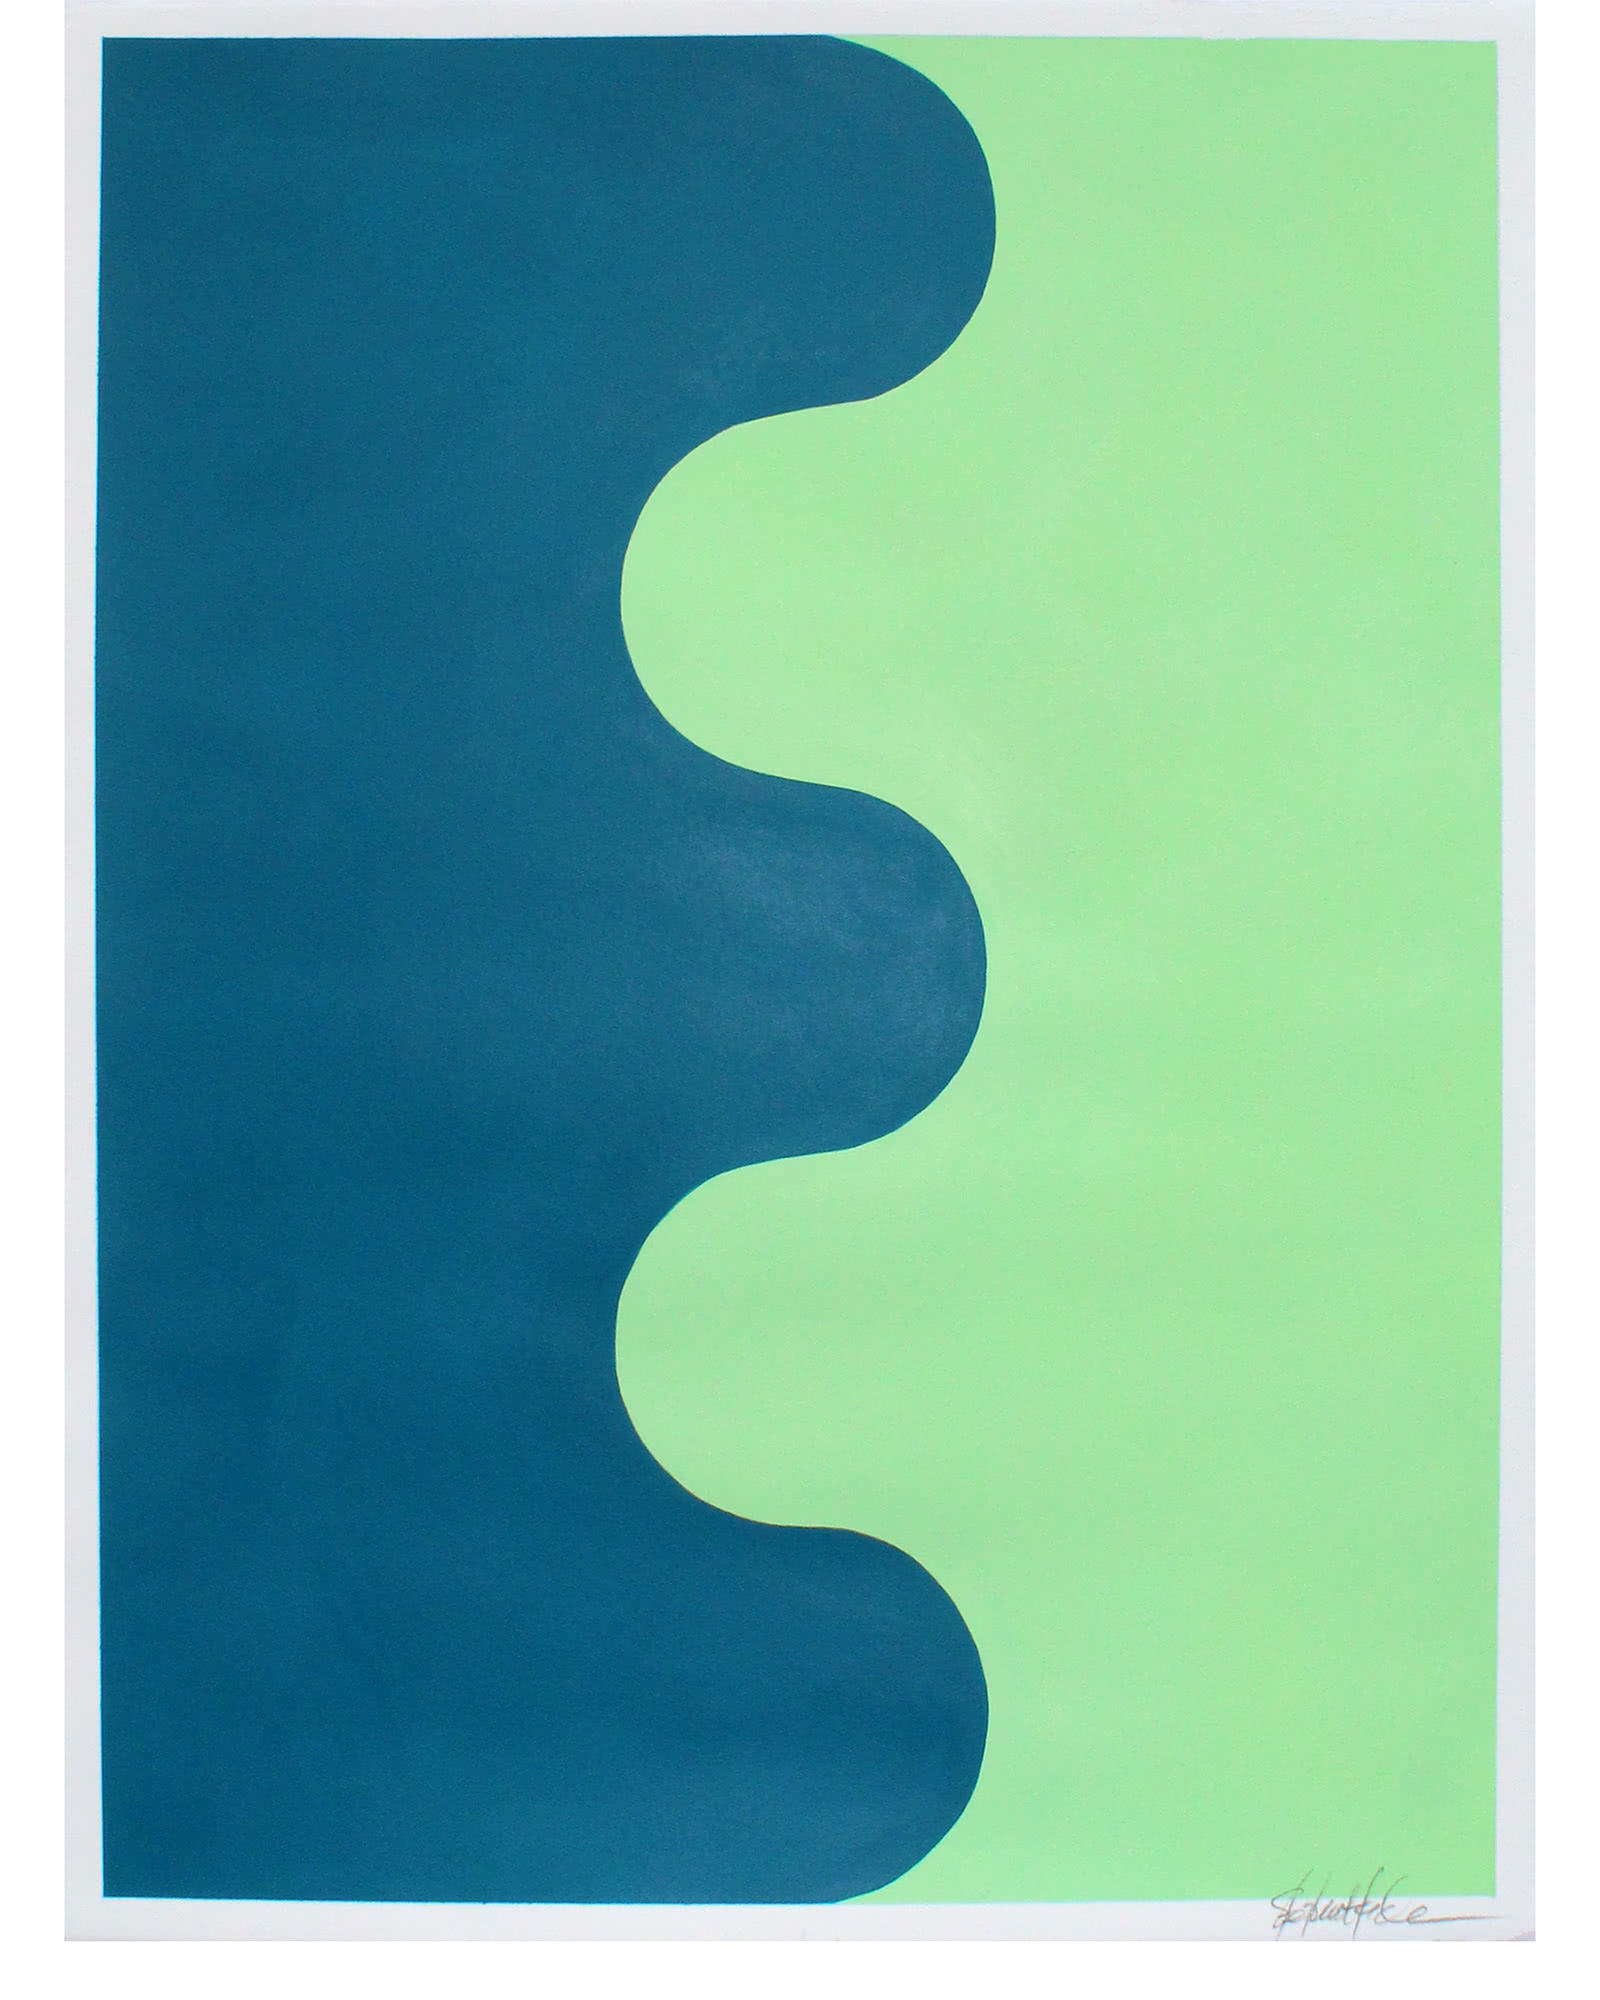 """""""Hairpin Serpentine in Deepwater Blue and Warmwater Green"""" by Stephanie Henderson,"""